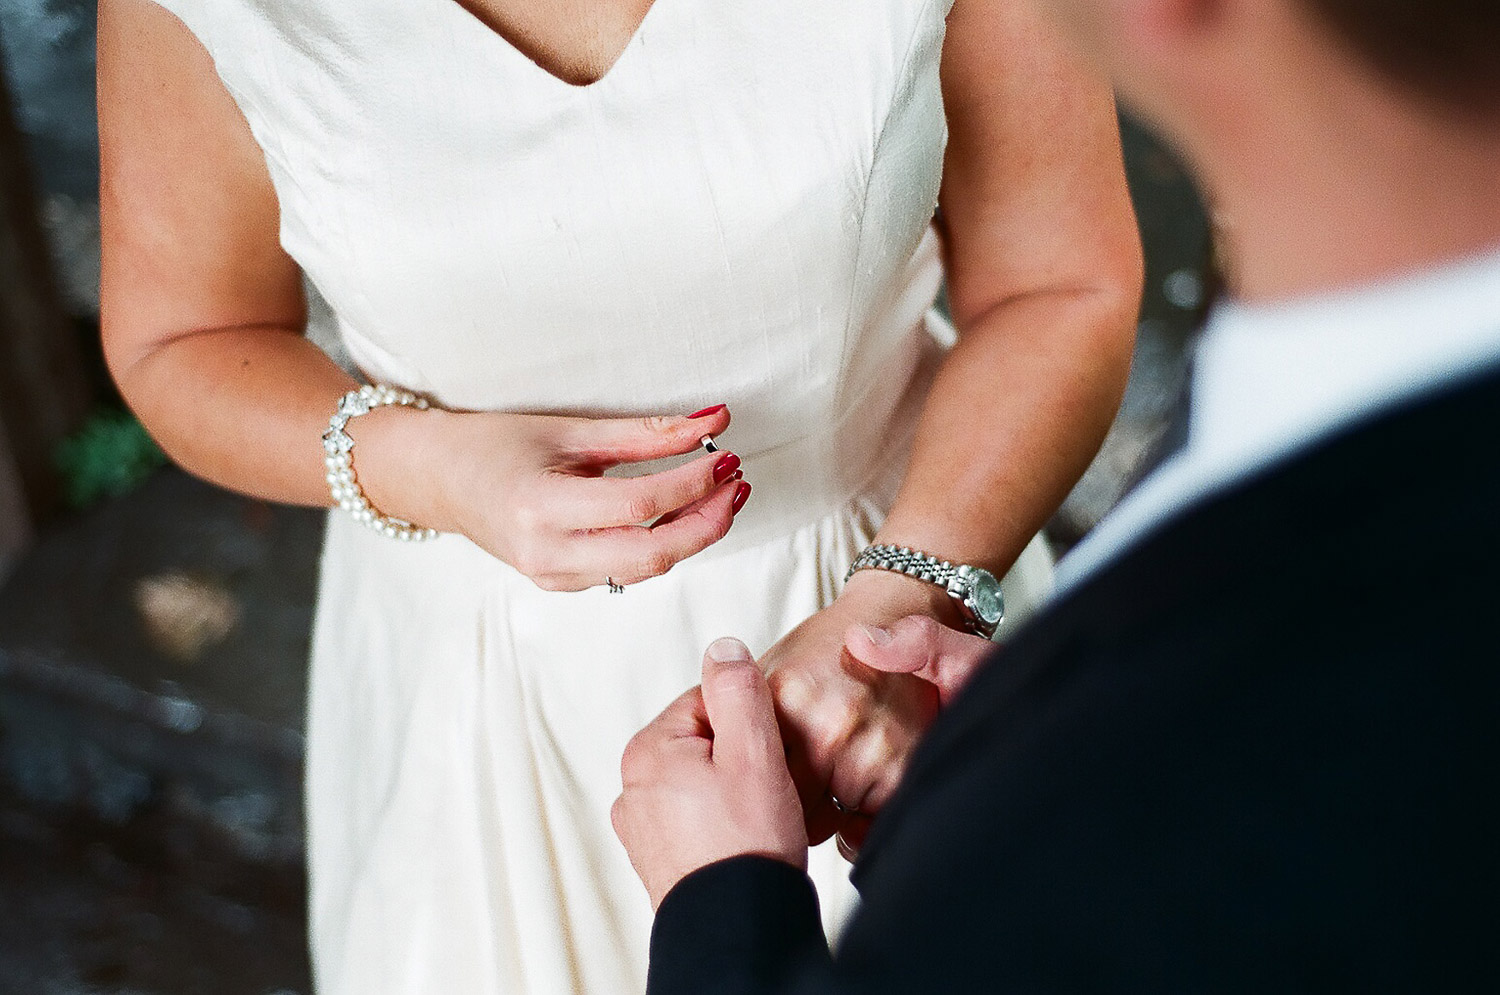 elopement wedding day photo of ring exchange by wendy g photography